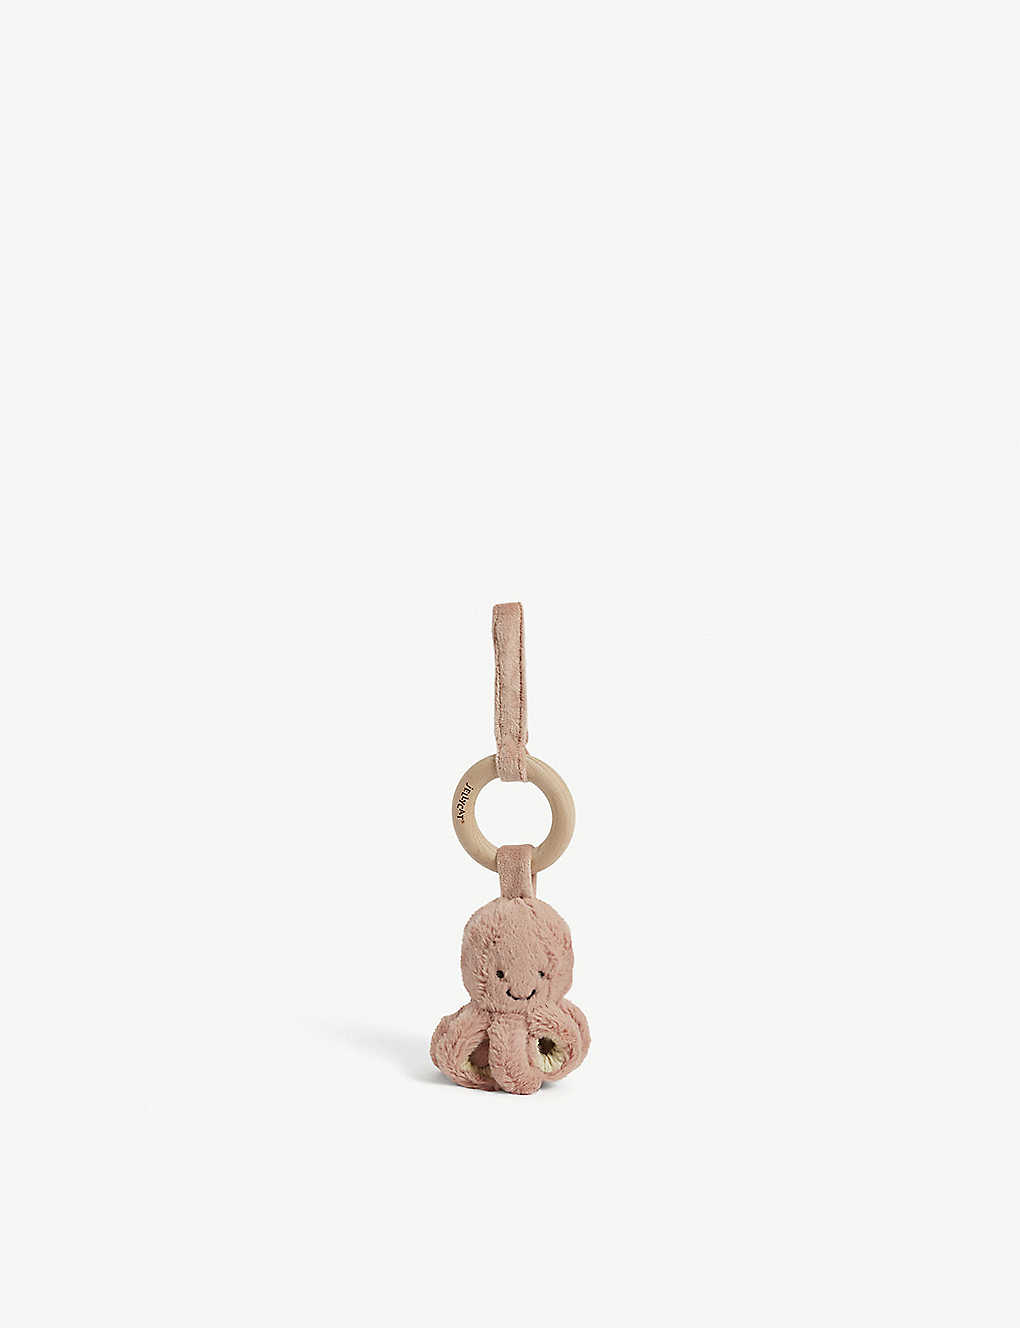 JELLYCAT: Odell the Octopus wooden ring soft toy